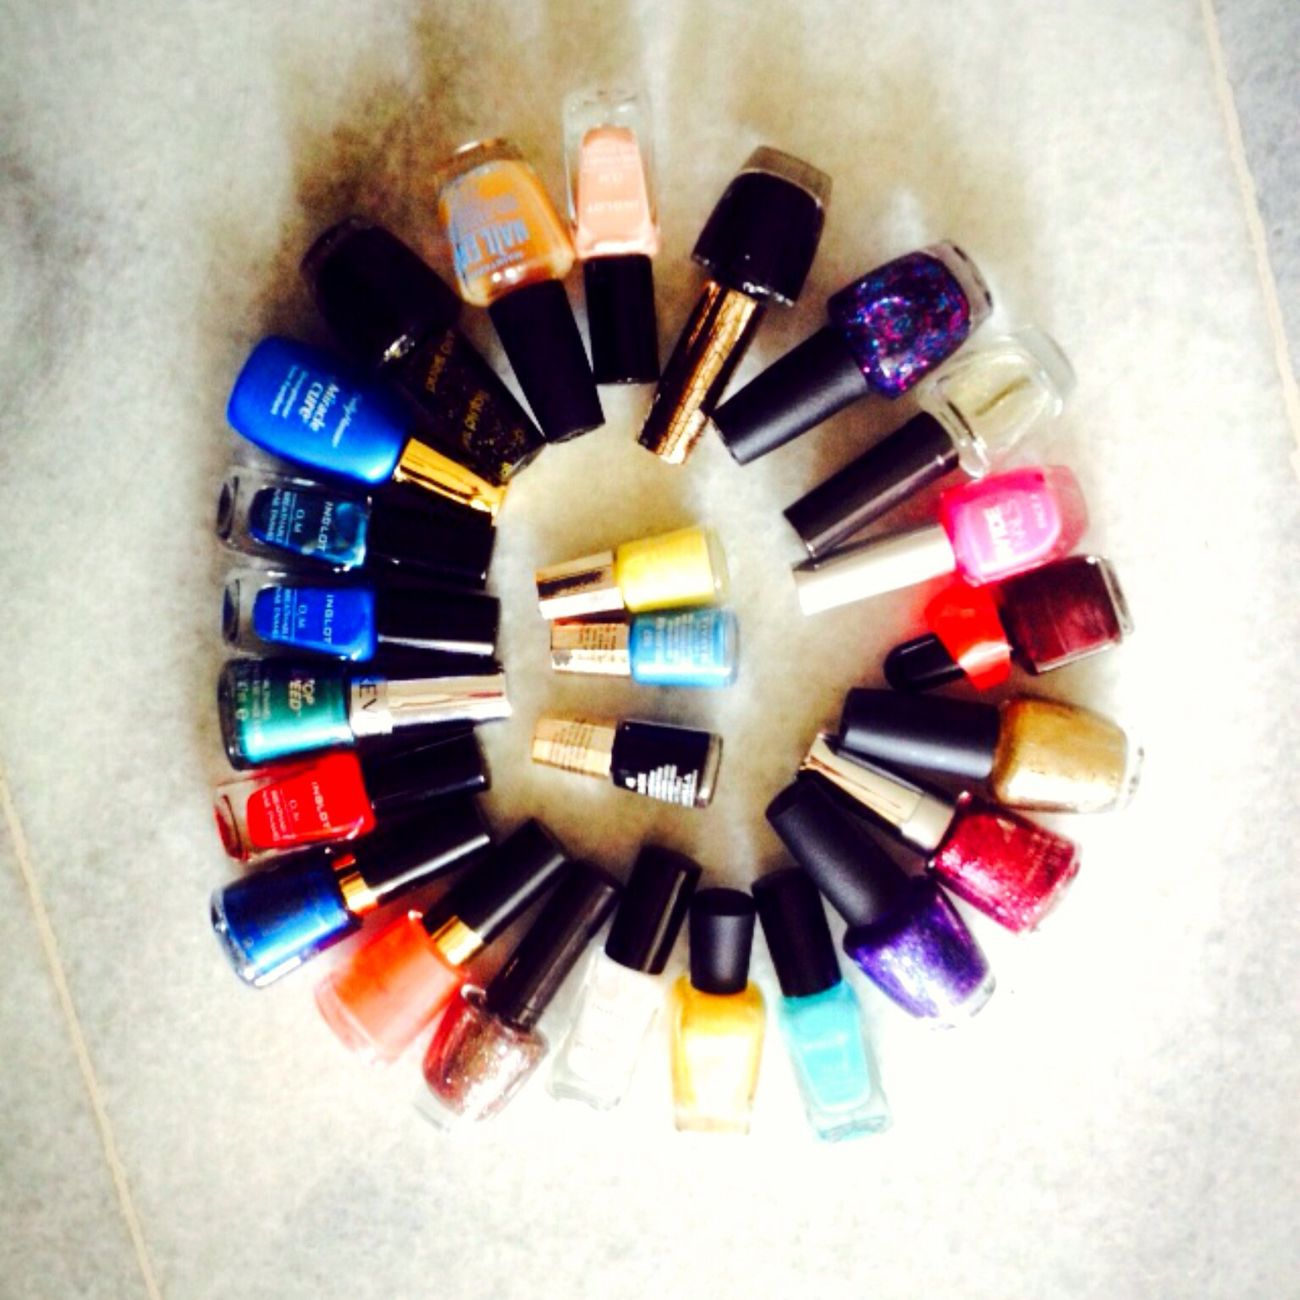 You can order if you want Revlon Mavala,opi, Zoya,faceshop,inglot